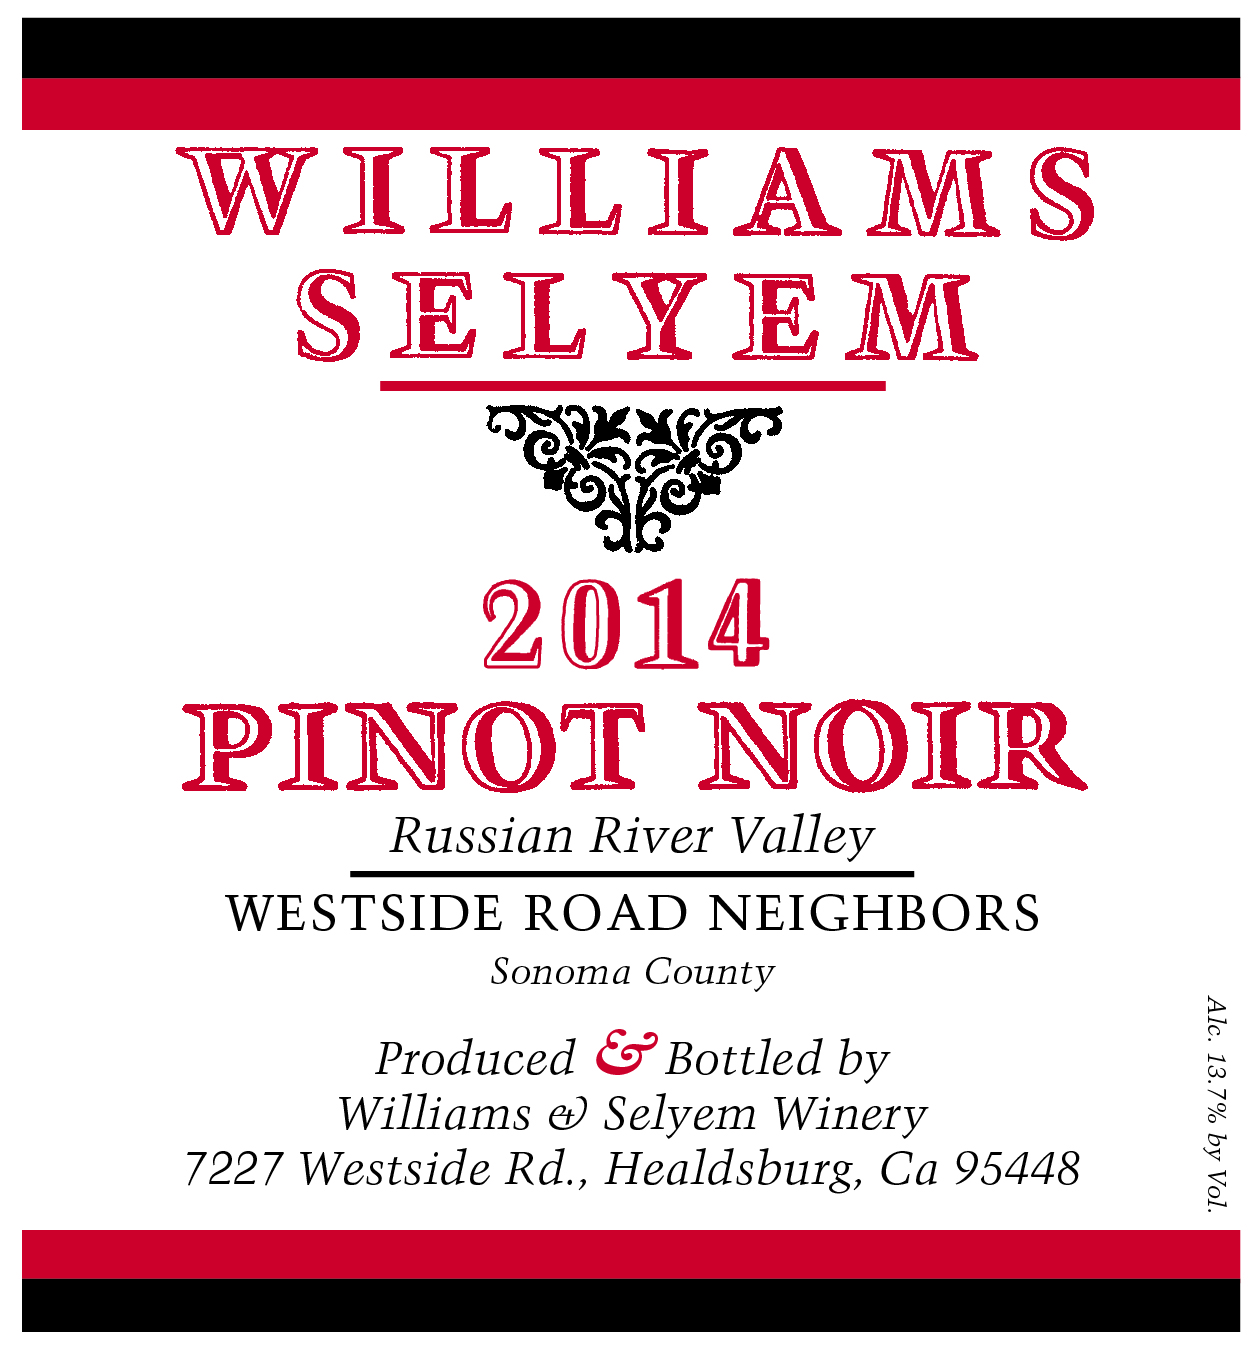 2015 Williams Selyem Pinot Noir Westside Road Neighbors